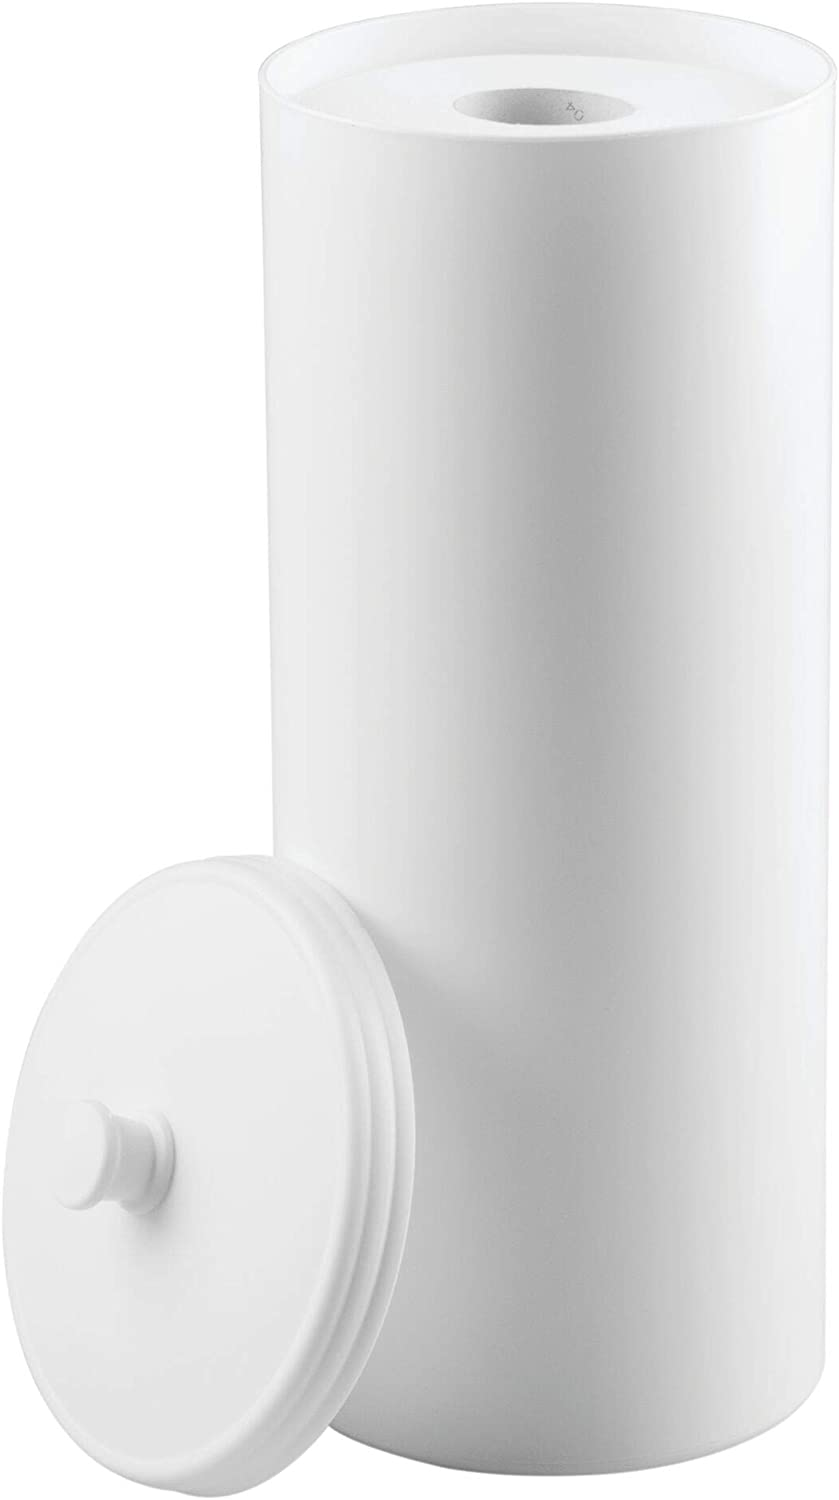 mDesign Free Standing Toilet Roll Holder - No Drilling Required - Plastic Toilet Roll Stand for The Bathrrom - Toilet Roll Storage, Elegantly Solved with Space for 3 Rolls - White